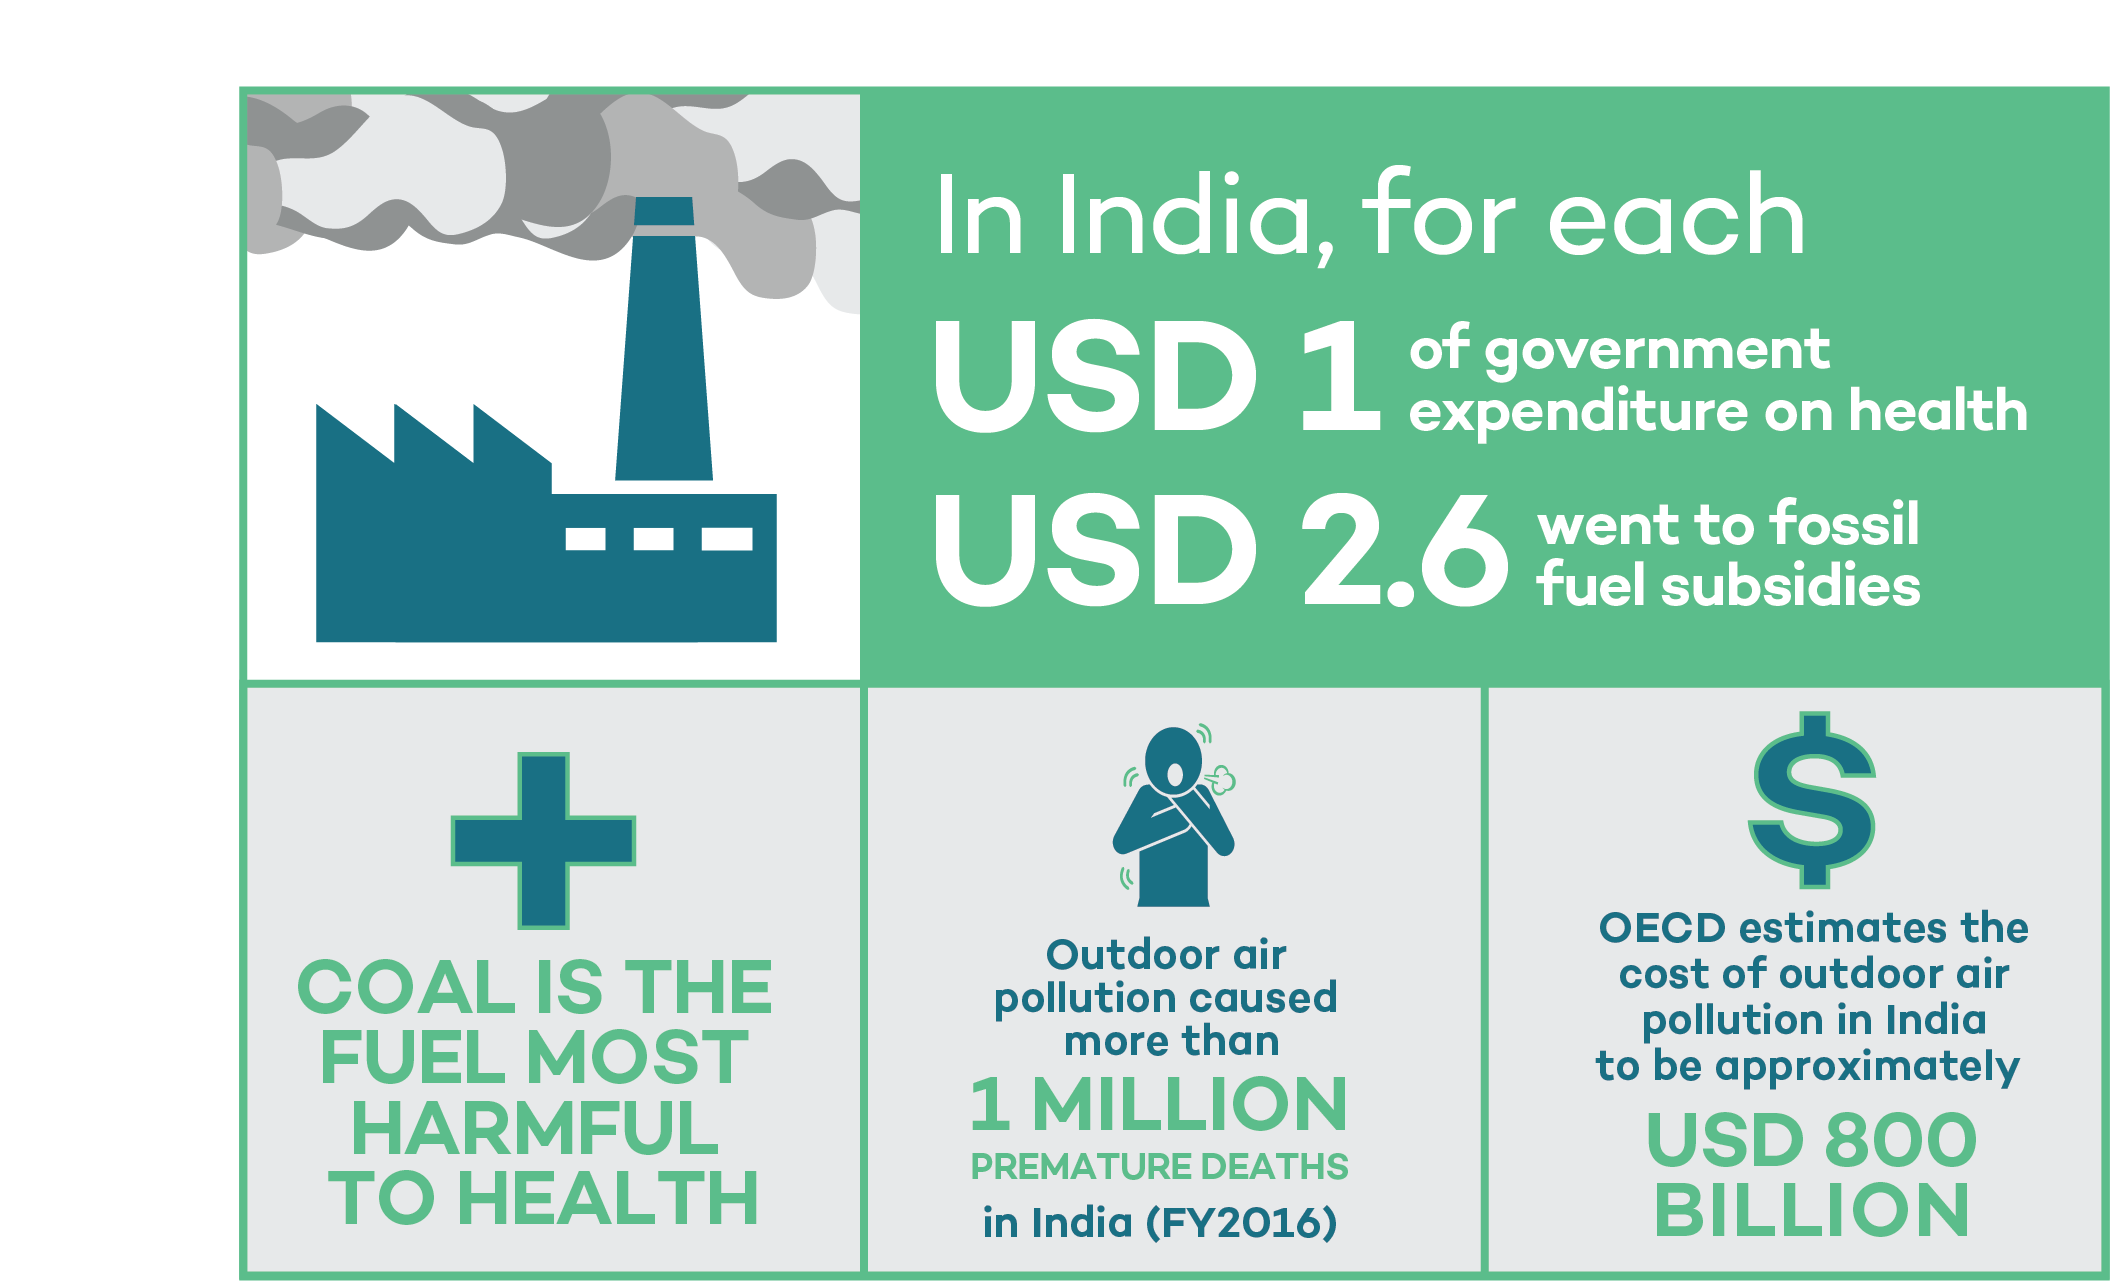 public health expenditure that could be achieved from reforming coal subsidies